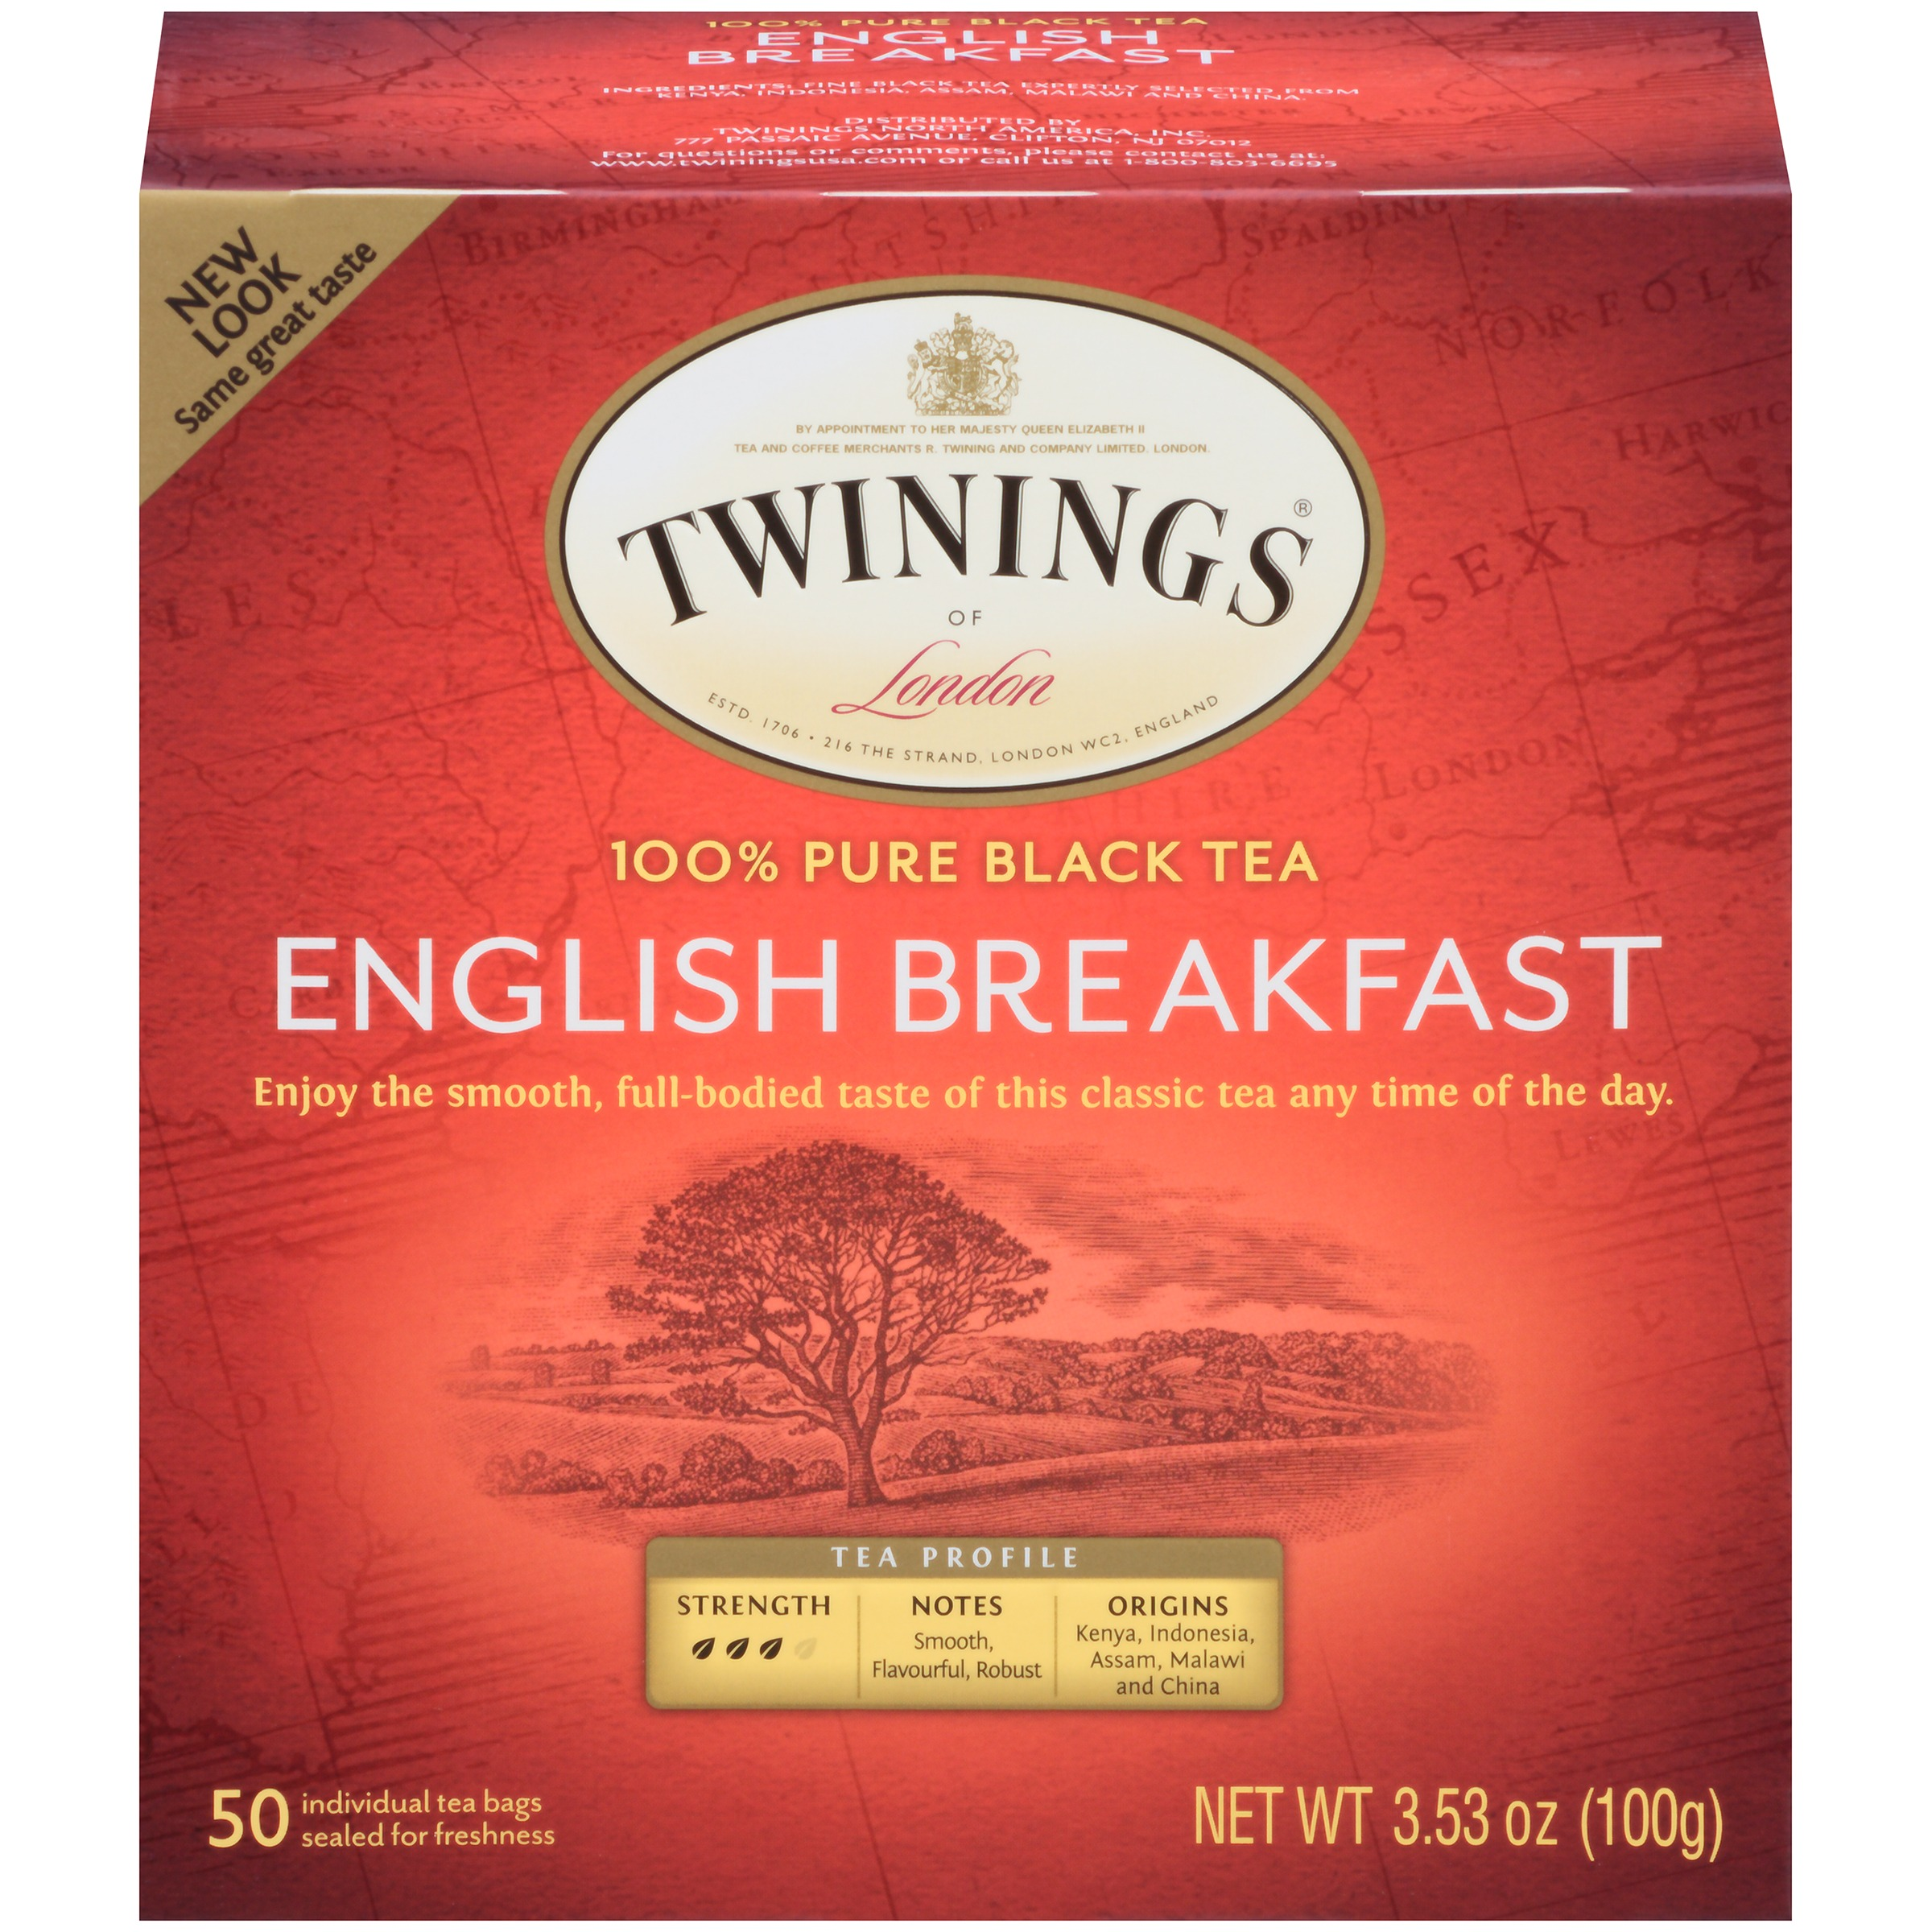 Stunning Twinings Of London   English Breakfast  Ct Tea Bags  Oz  With Likable Twinings Of London   English Breakfast  Ct Tea Bags  Oz Box   Walmartcom With Delectable Garden Of Earthly Pleasures Also Potager Garden Design Ideas In Addition Long Garden Designs And Good Places To Eat Near Covent Garden As Well As Hatton Garden Loose Diamonds Additionally The Garden Centre From Walmartcom With   Likable Twinings Of London   English Breakfast  Ct Tea Bags  Oz  With Delectable Twinings Of London   English Breakfast  Ct Tea Bags  Oz Box   Walmartcom And Stunning Garden Of Earthly Pleasures Also Potager Garden Design Ideas In Addition Long Garden Designs From Walmartcom